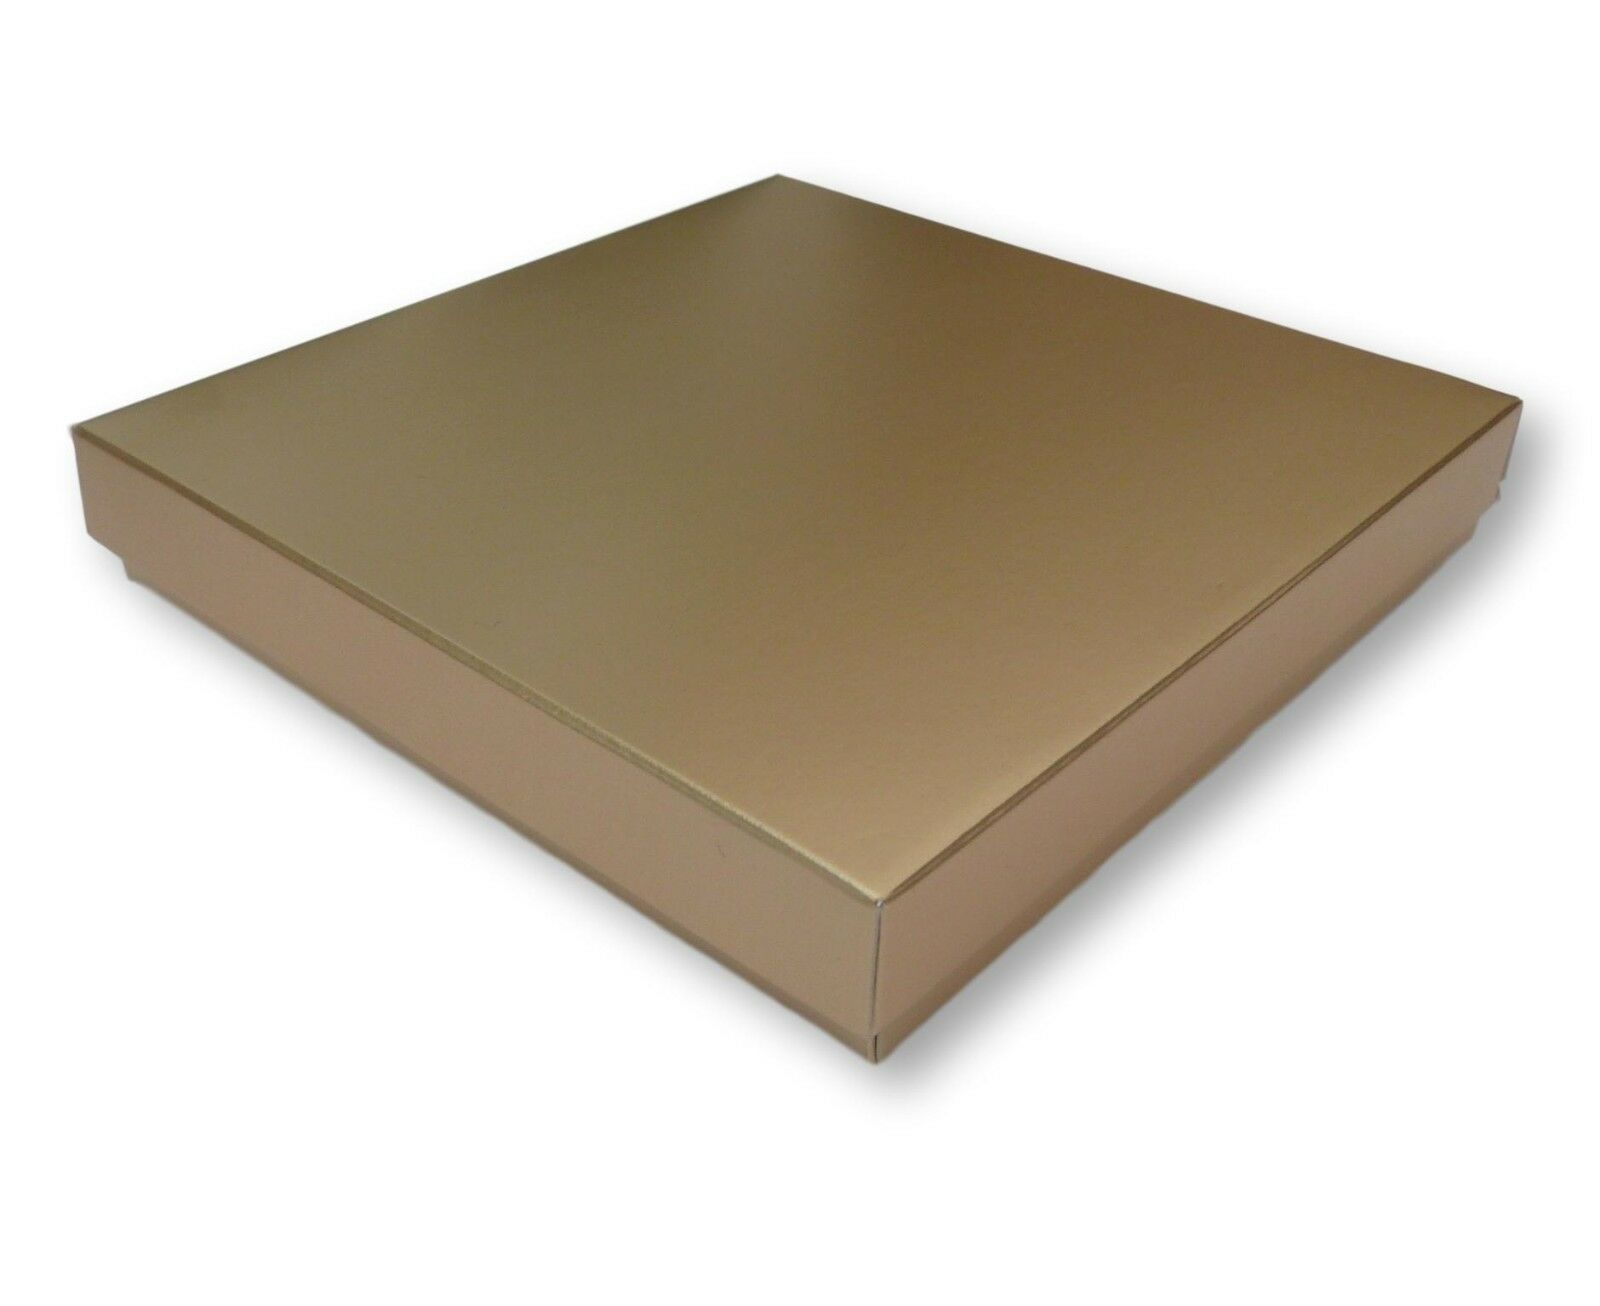 200 SATIN Gold 6X6 INCH BOXES. GREETING CARD, GIFTS, LINGERIE, JEWELLERY